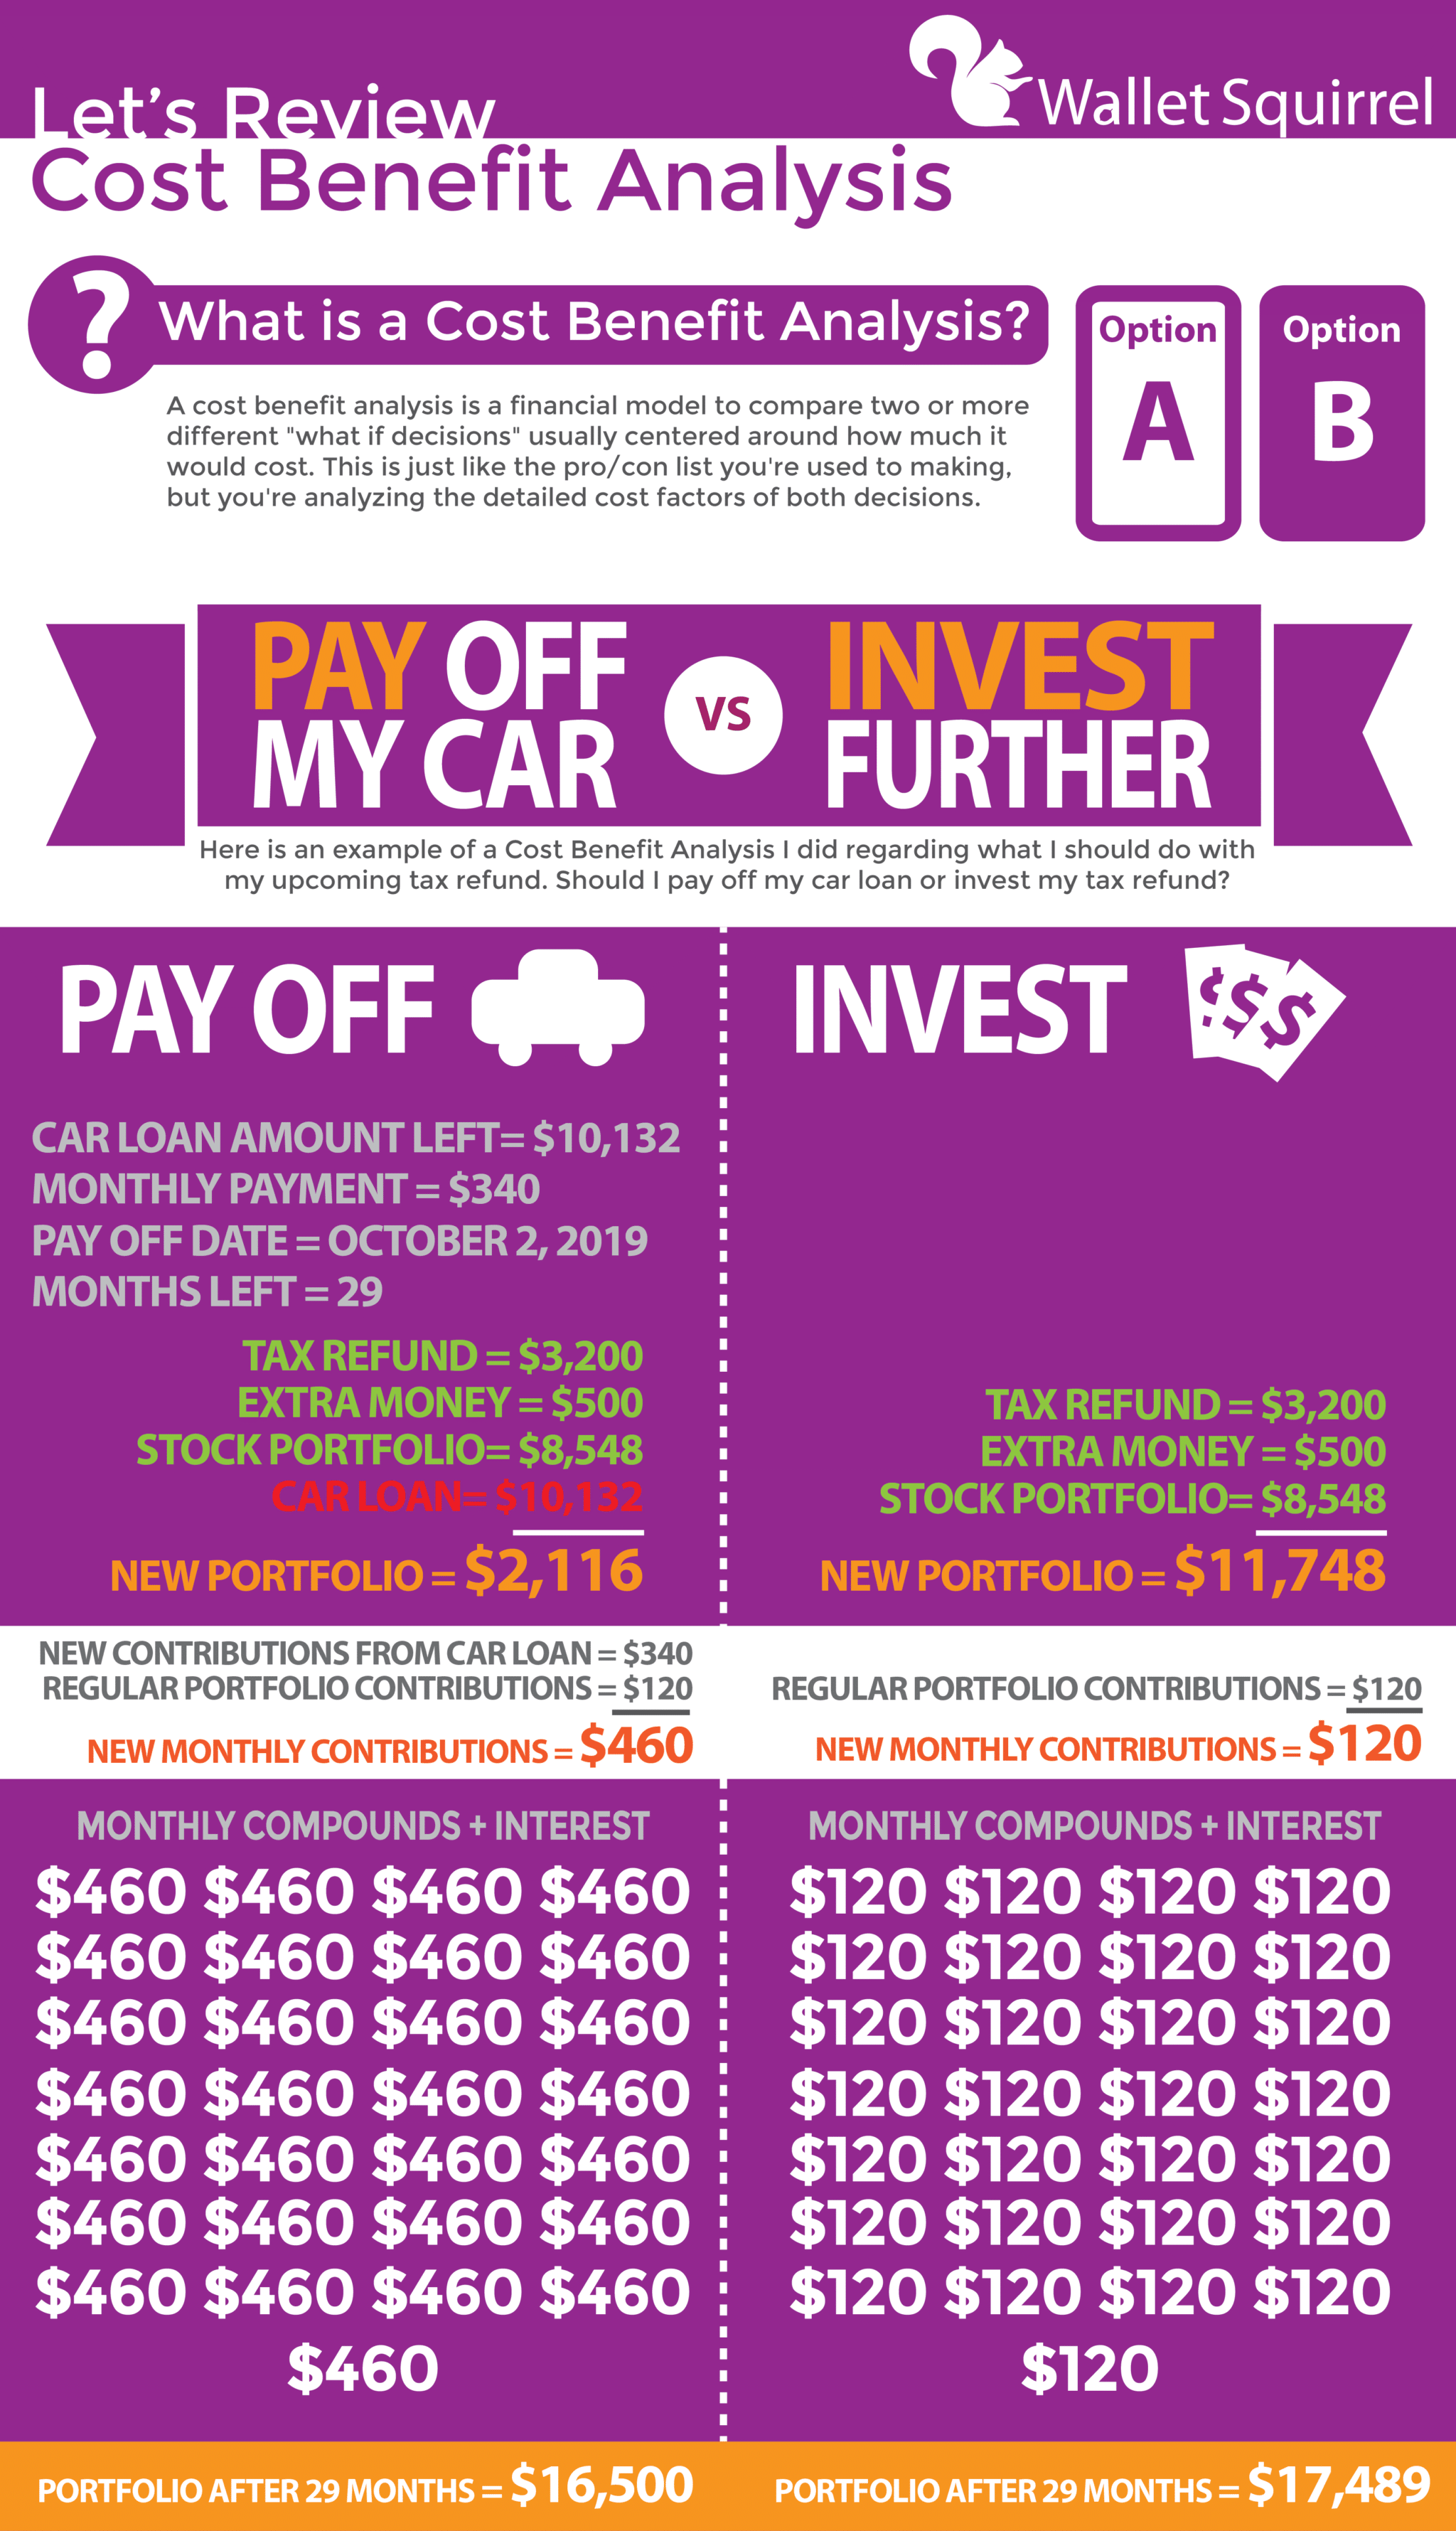 Cost Benefit Analysis Infographic